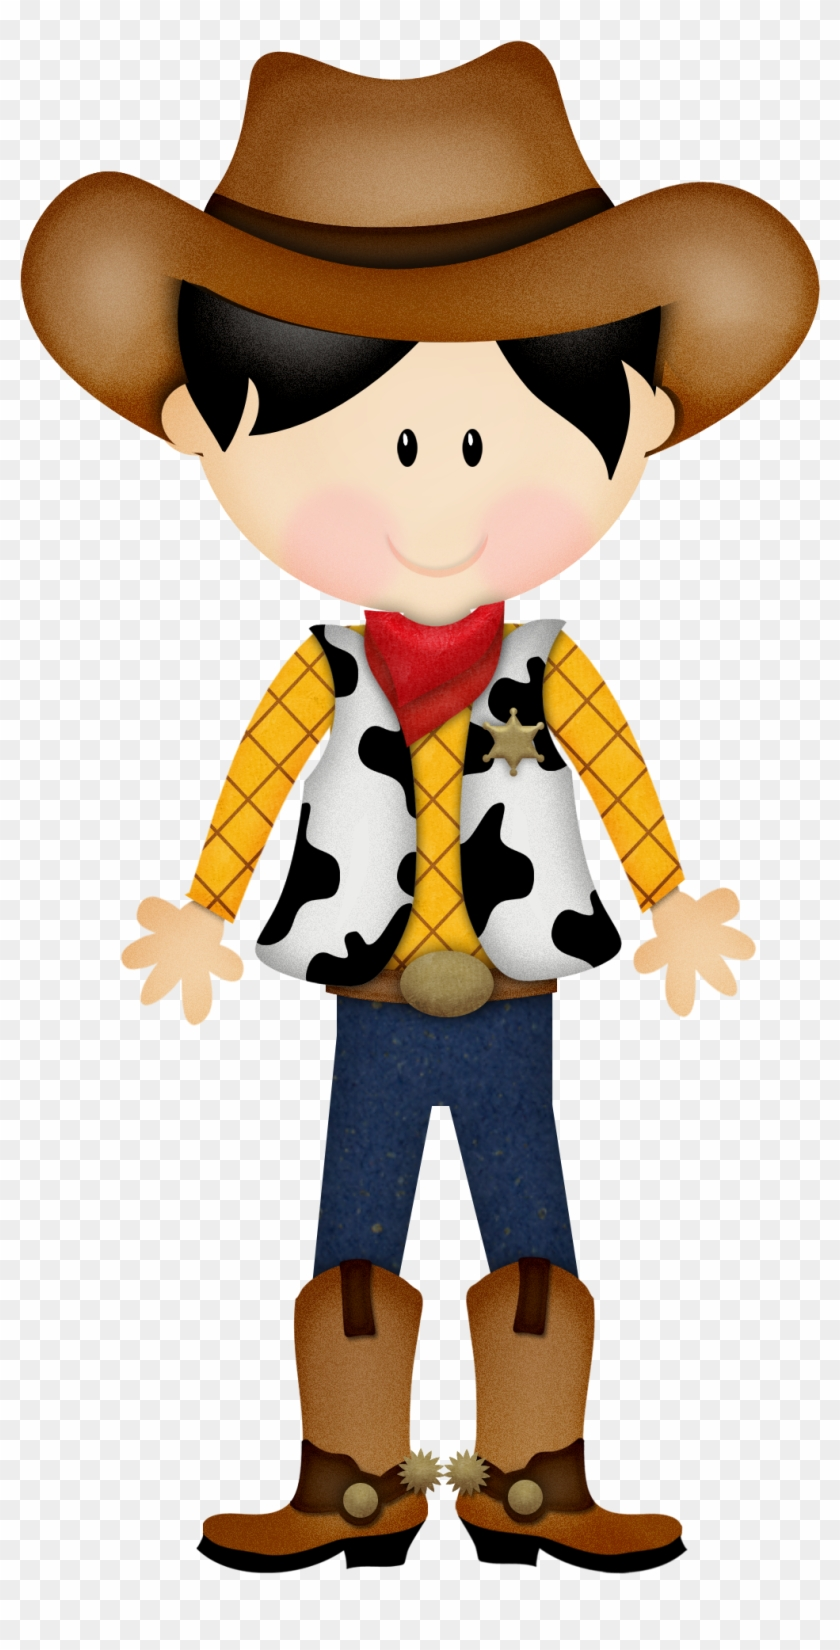 Top Cowboy Clipart Black And White Hd Pictures Western Wear Clip Art Free Transparent Png Clipart Images Download